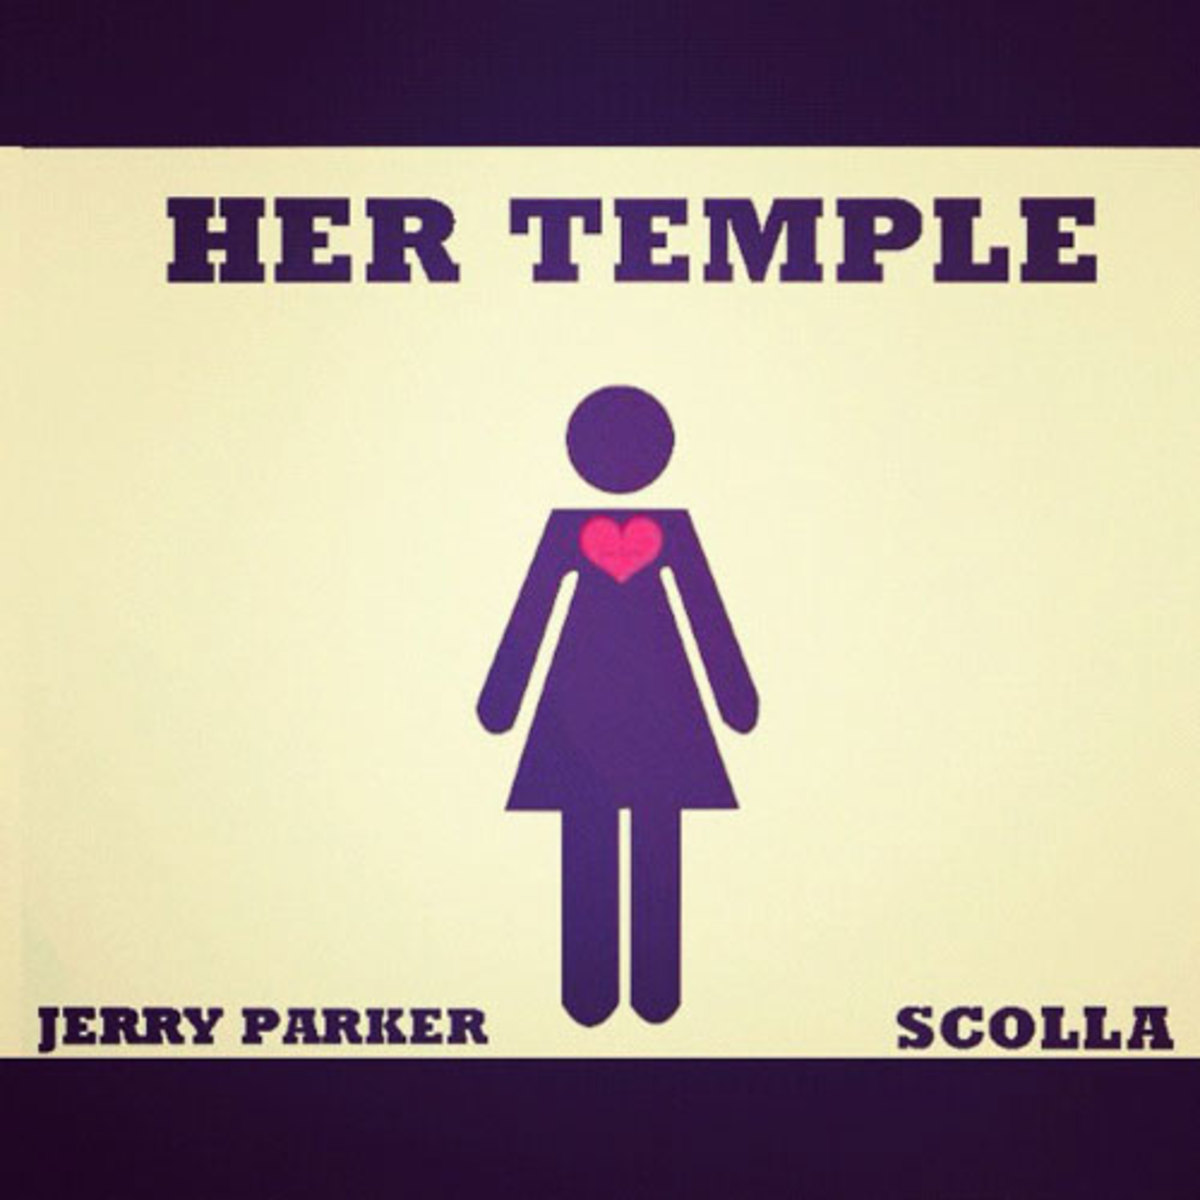 jerryparker-temple.jpg